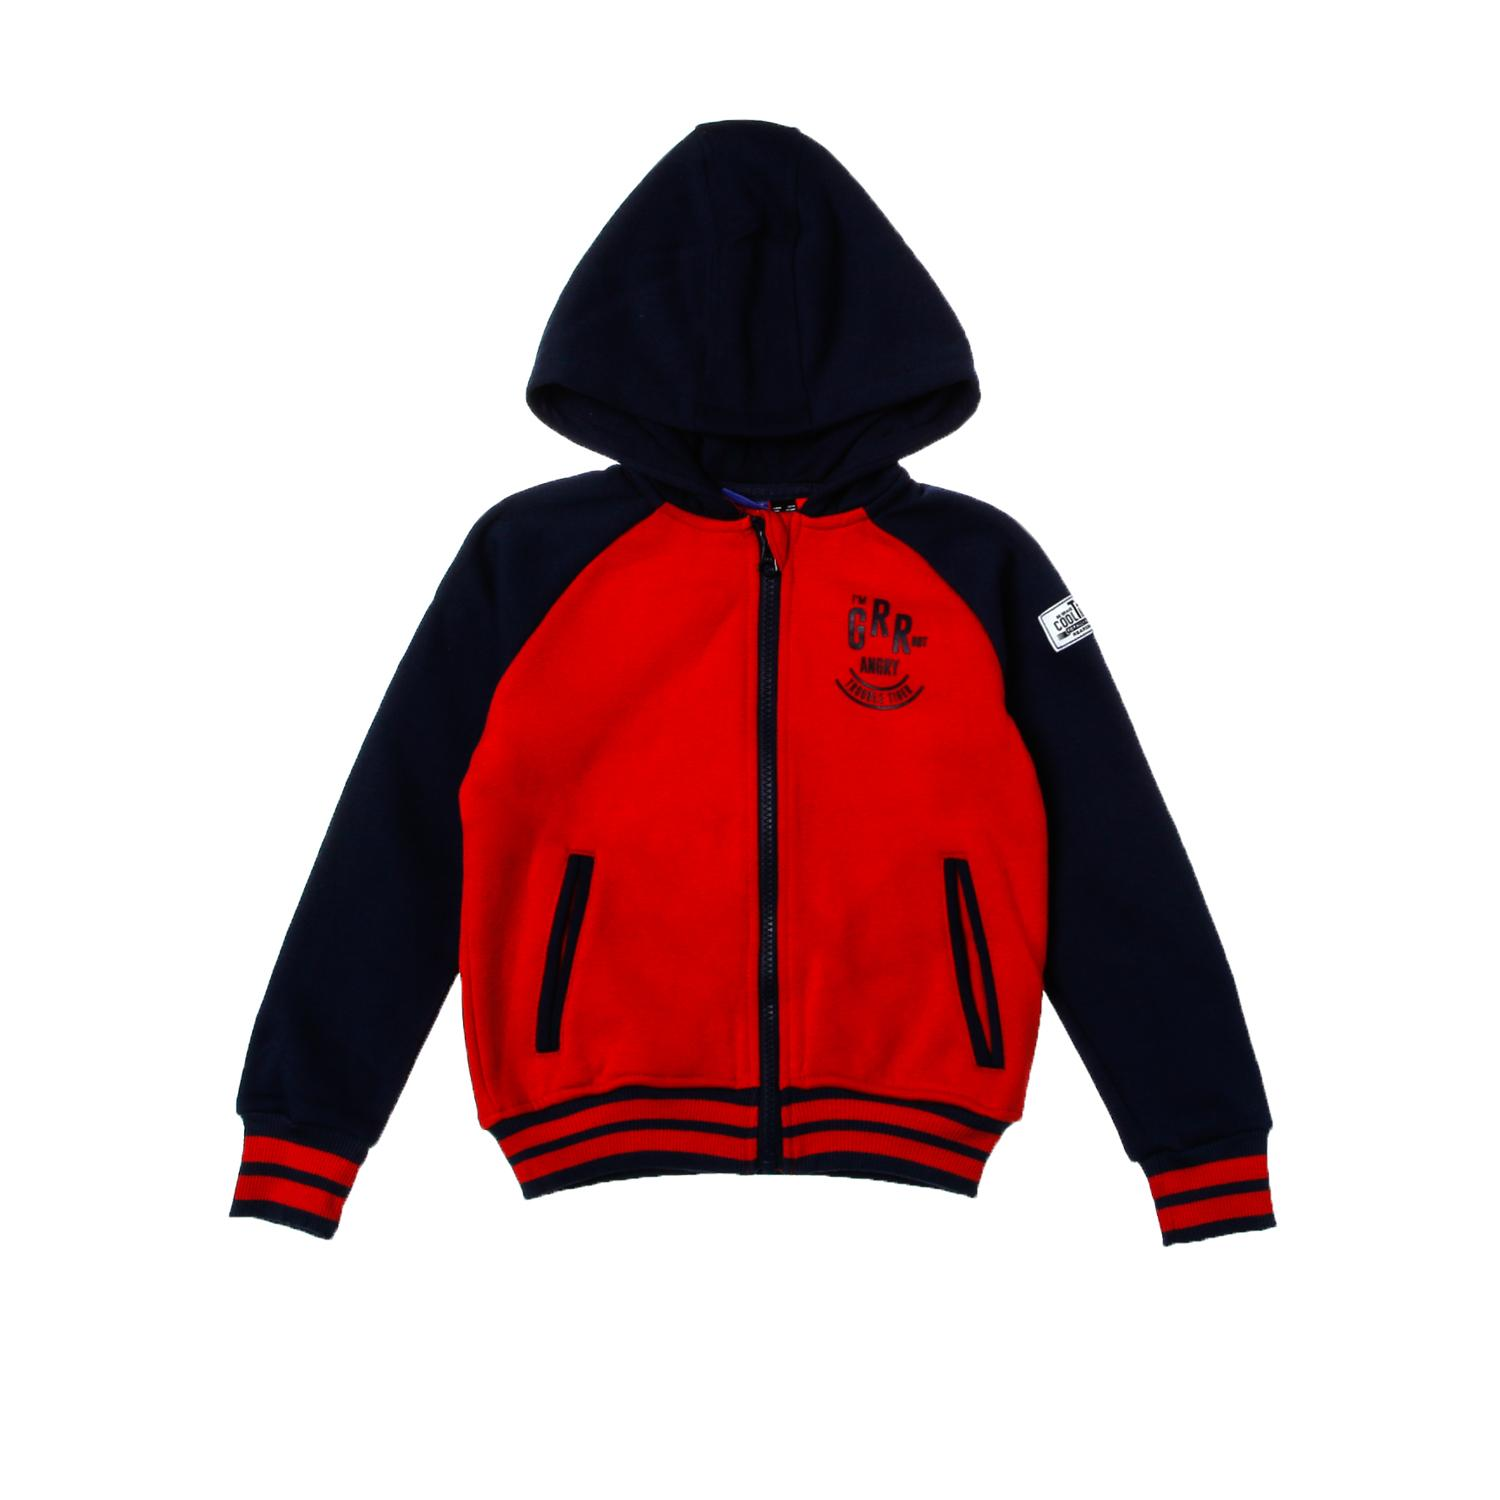 3e3447ad0 Baby Boy Jackets for sale - Jackets for Baby Boys online brands ...